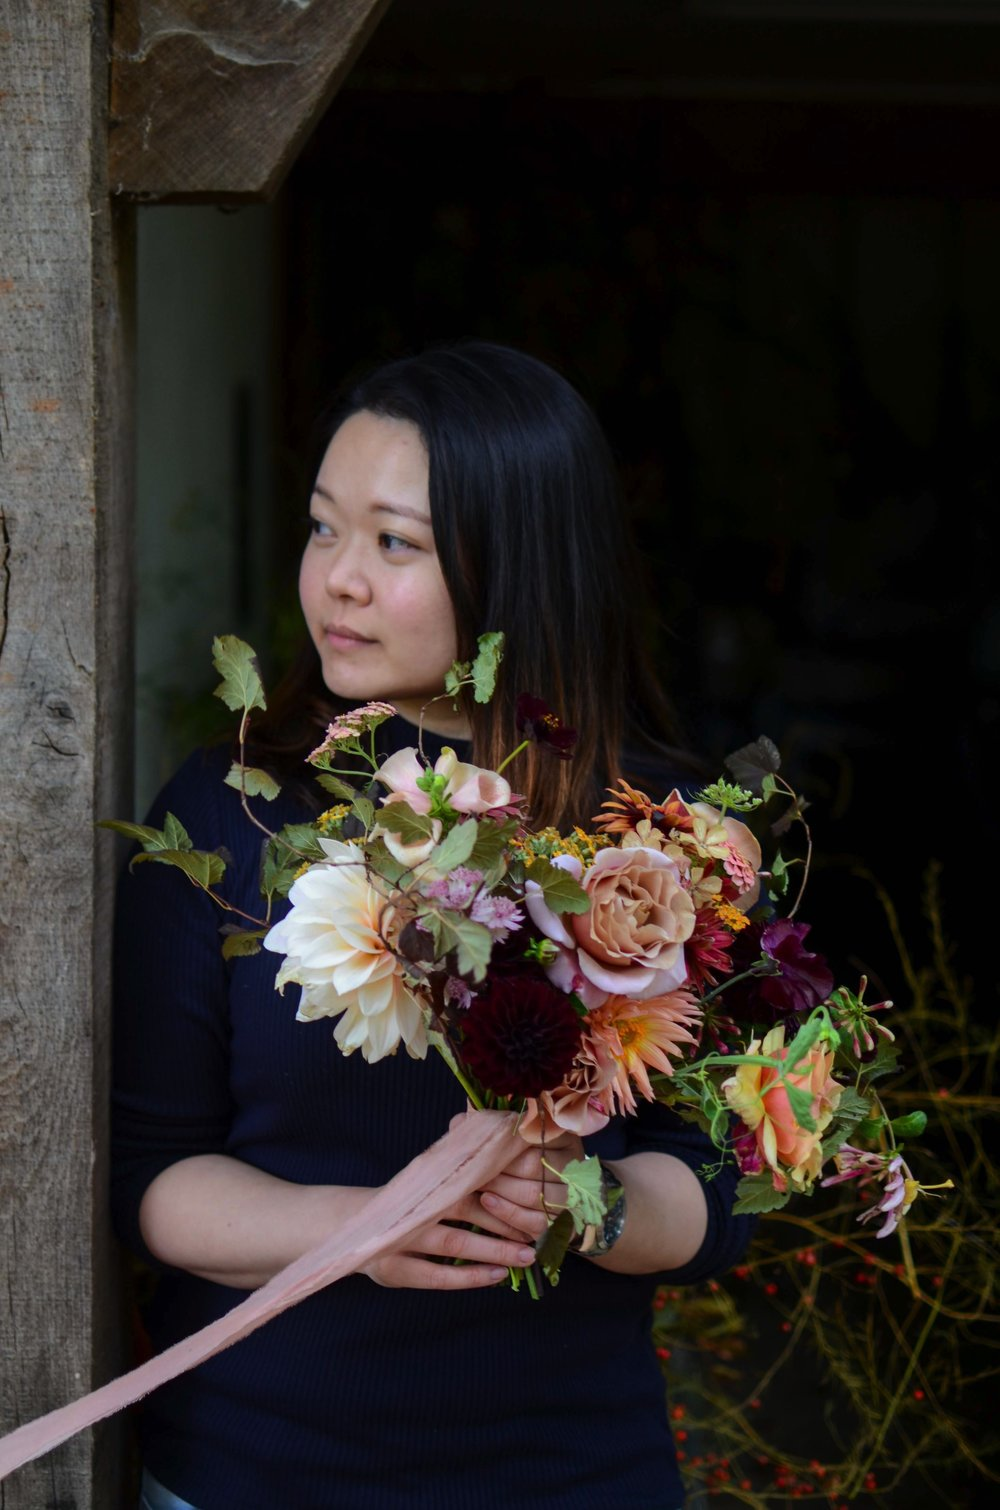 Florals - Iris Cheung at a Moss & Stone 1:1 Workshop | Image - Brigitte Girling